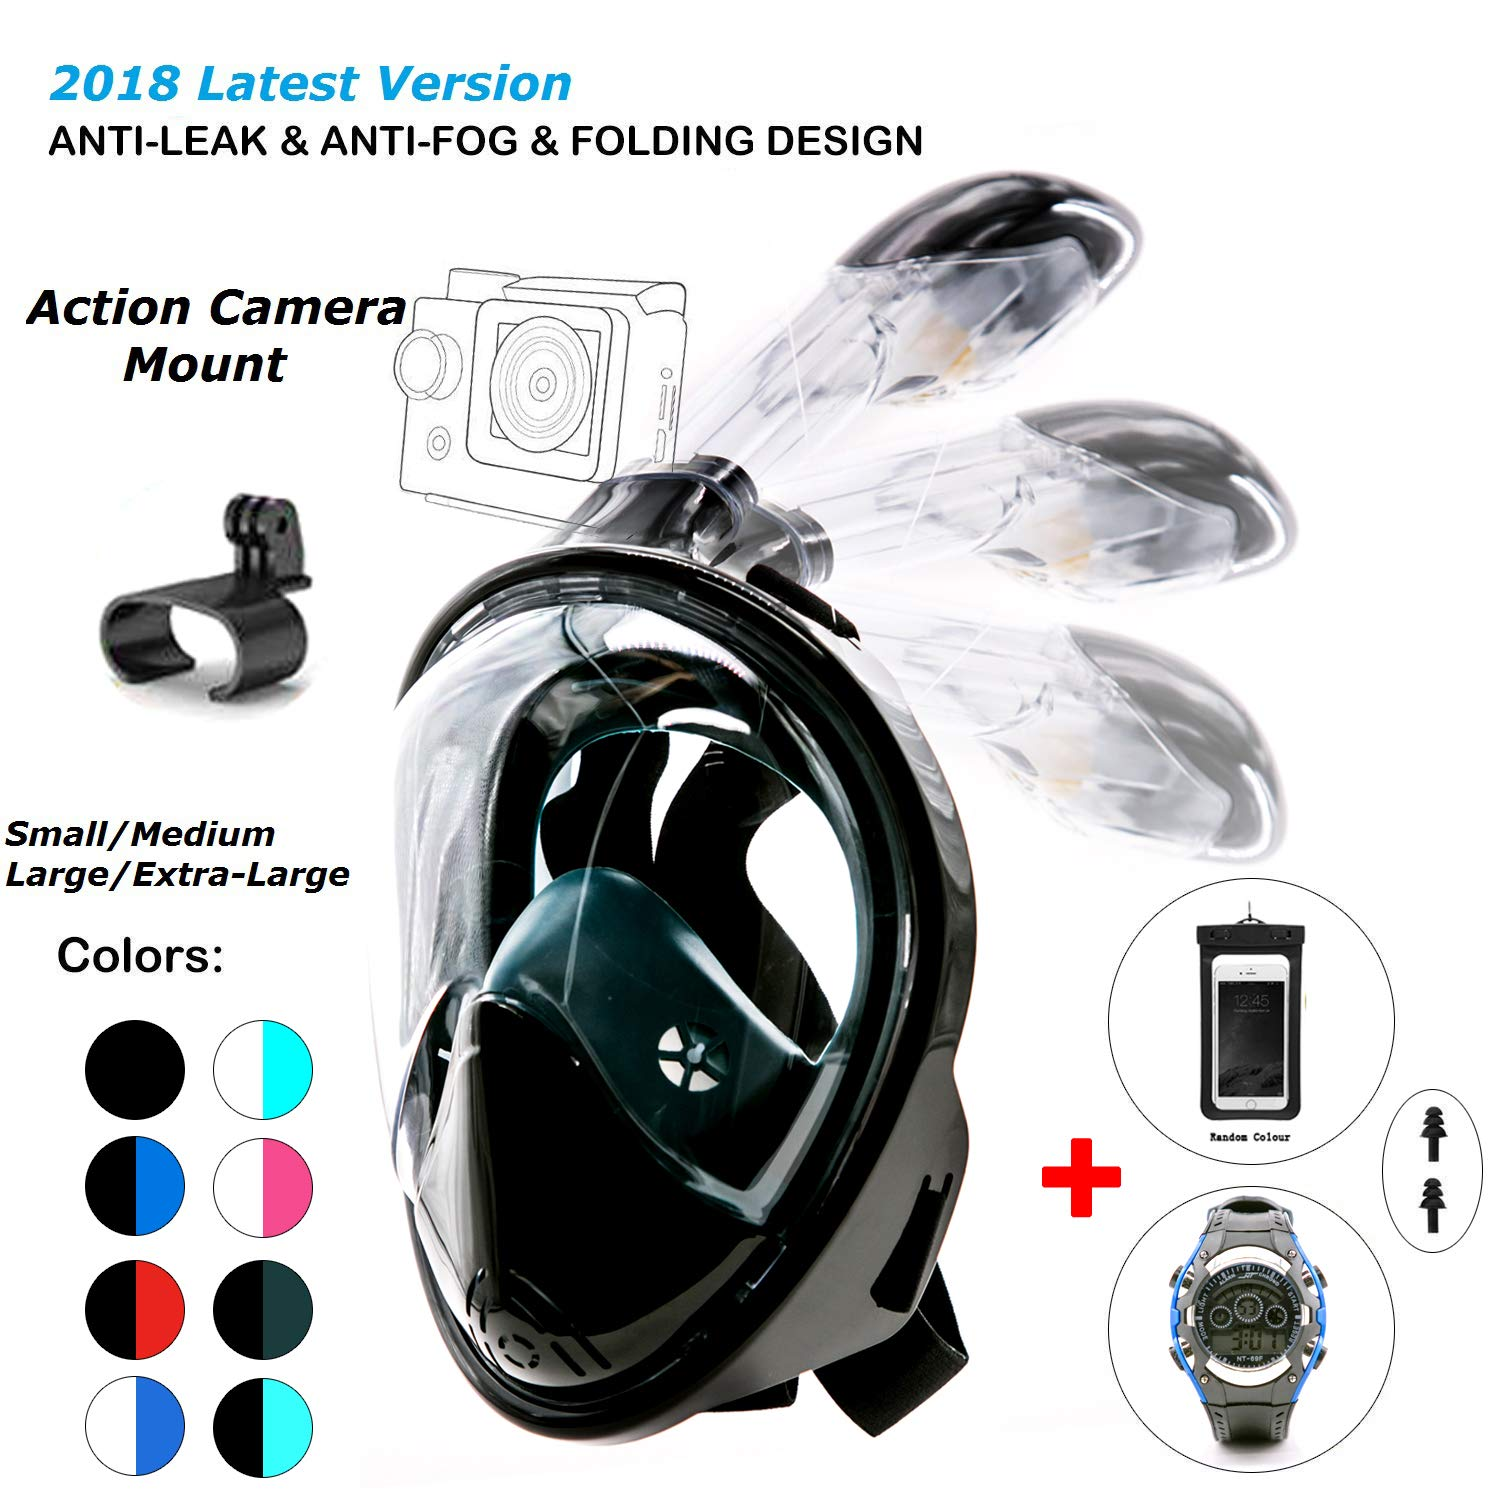 180° Snorkel Mask View for Adults and Youth. Full Face Free Breathing Folding Design.[Free Bonuses] Cell Phone Universal Waterproof Case and 30m Waterproof Watch (Black&DarkGreen, Small/Medium)